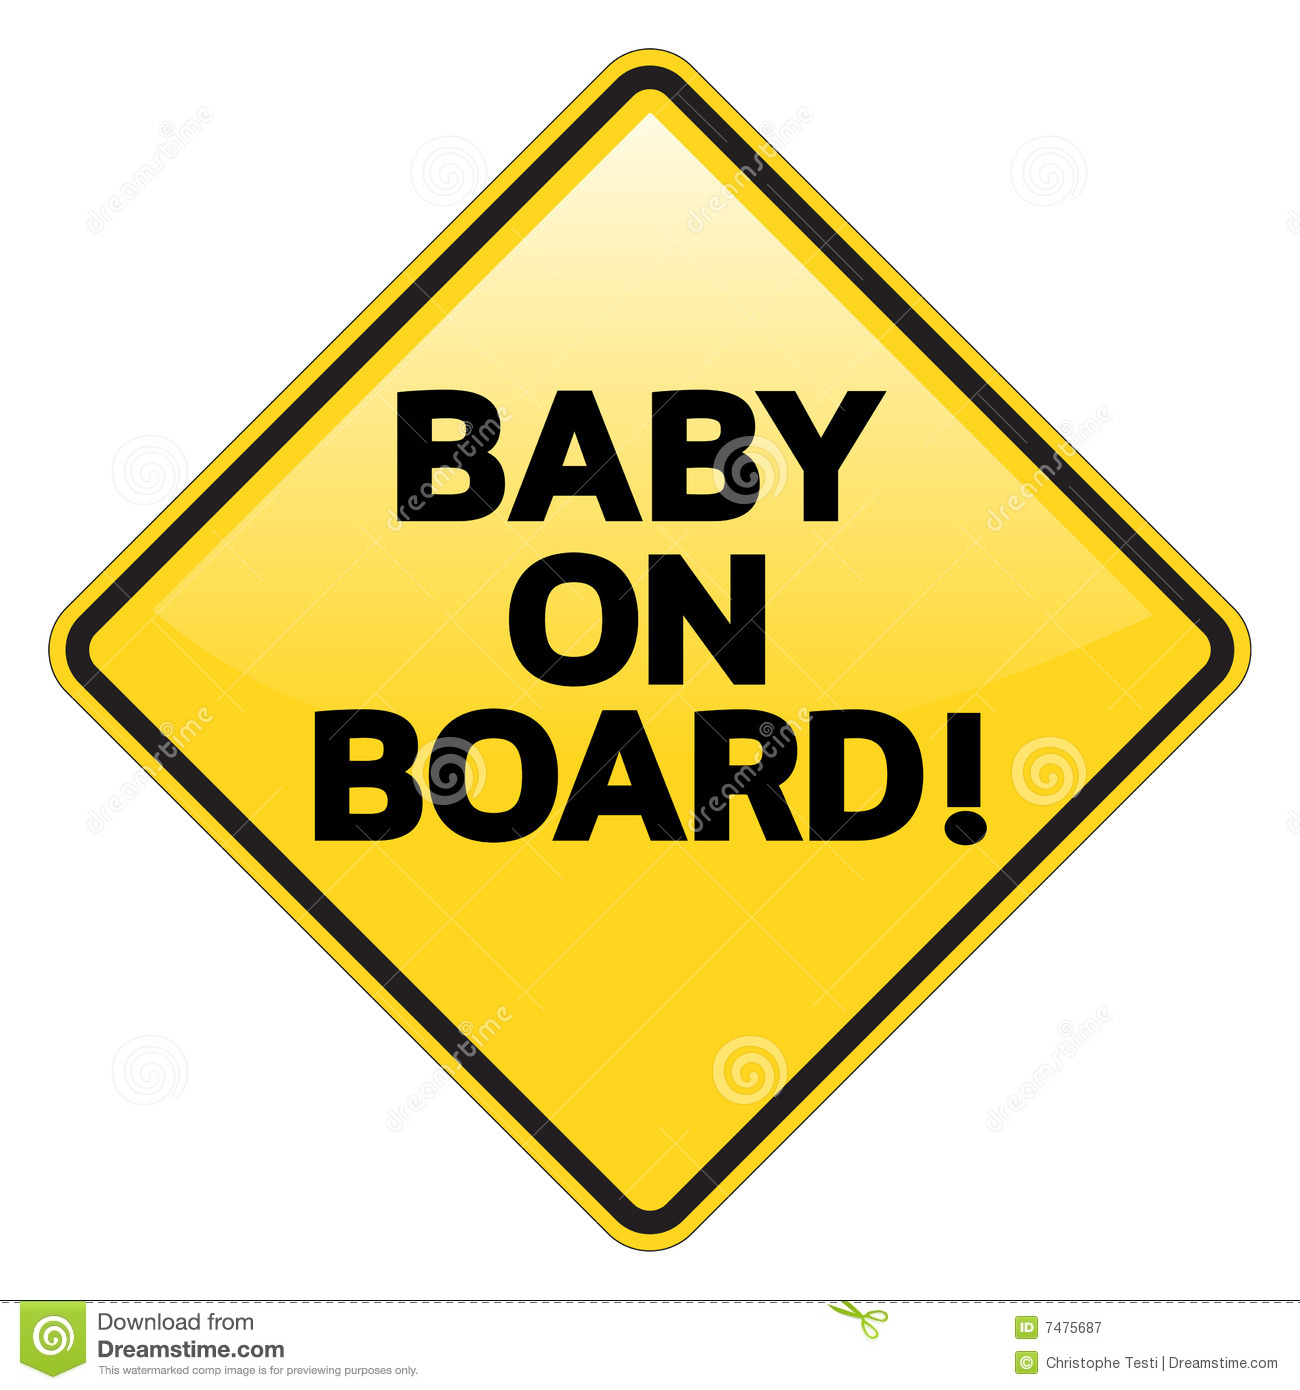 clipart baby on board - photo #25